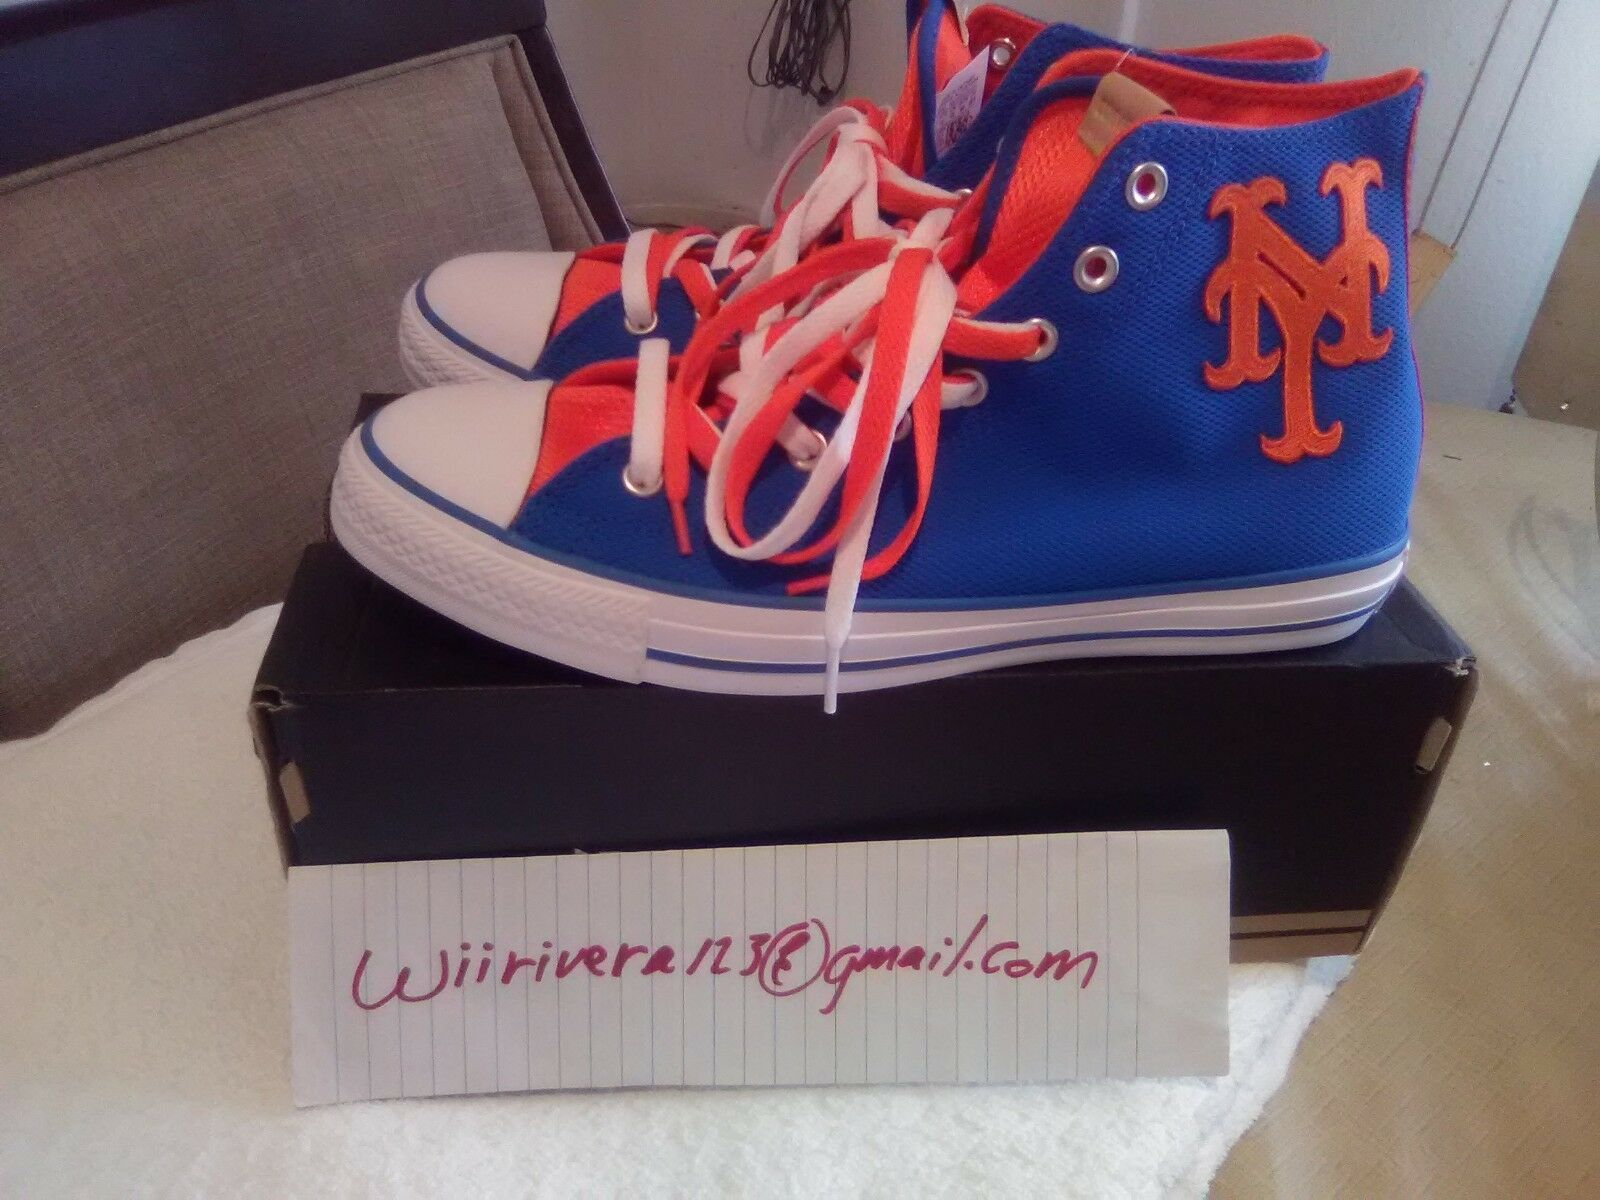 NY Mets shoes (Converse), Sizes 3 through 10 available